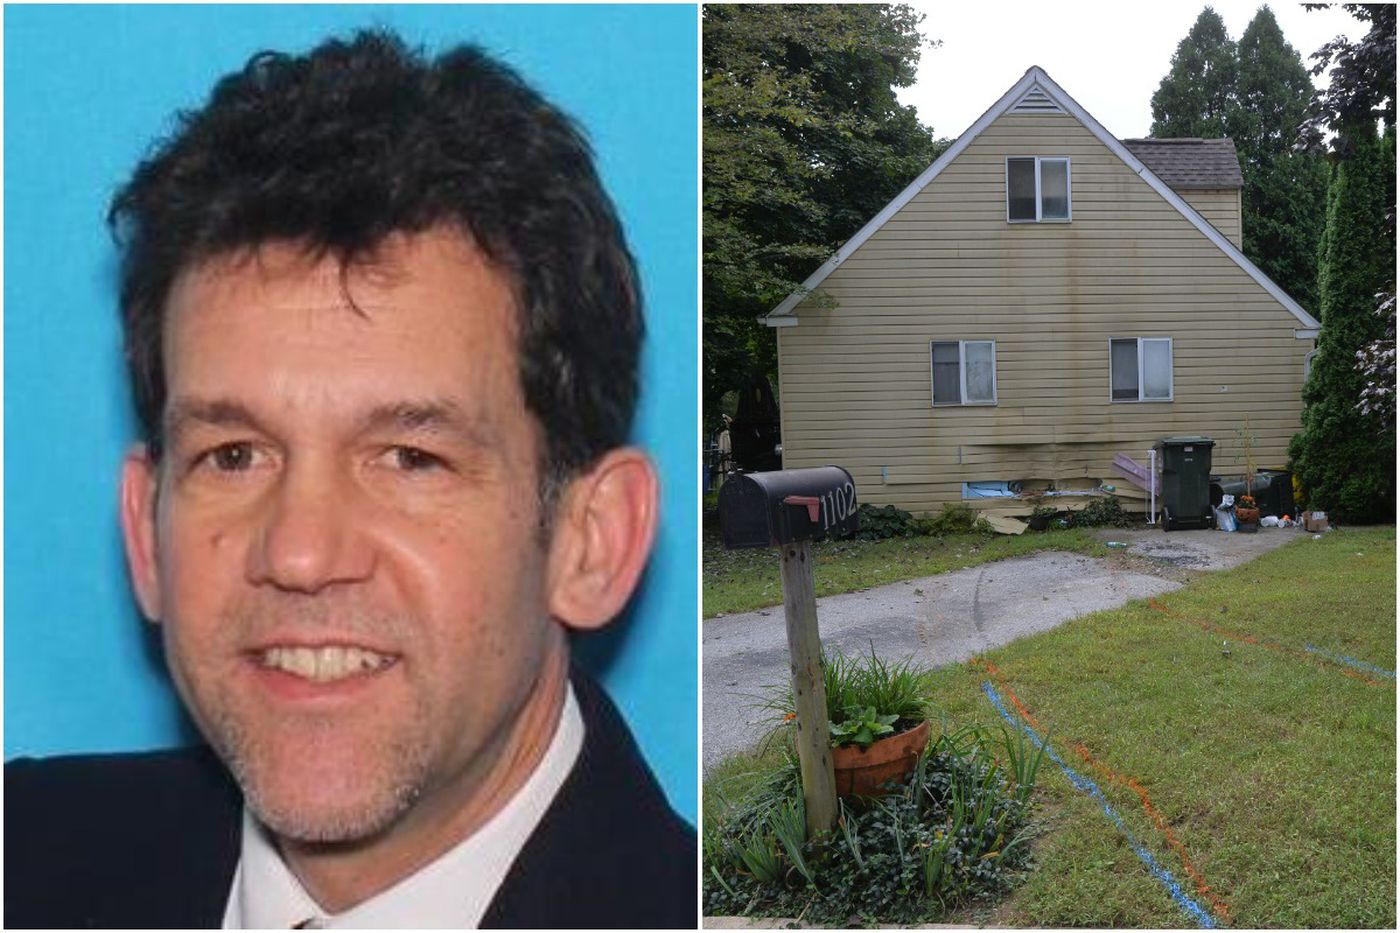 Before Bruce Rogal's murderous spree, his rage boiled over at home